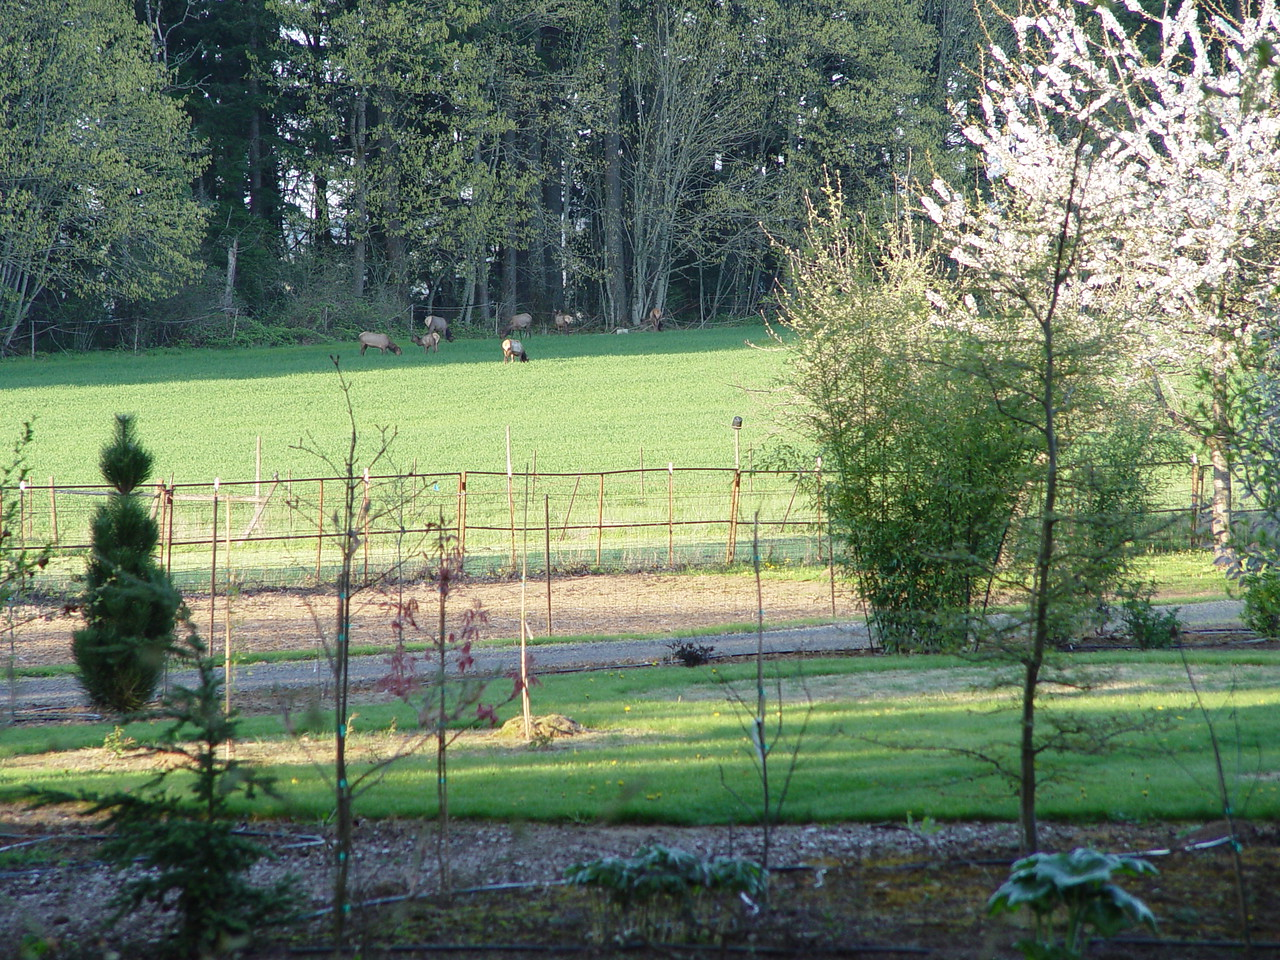 Friday April 24th: The Elk are out in our Neighbours filed, they were being cautious but didn't run off into the woods when they saw us.